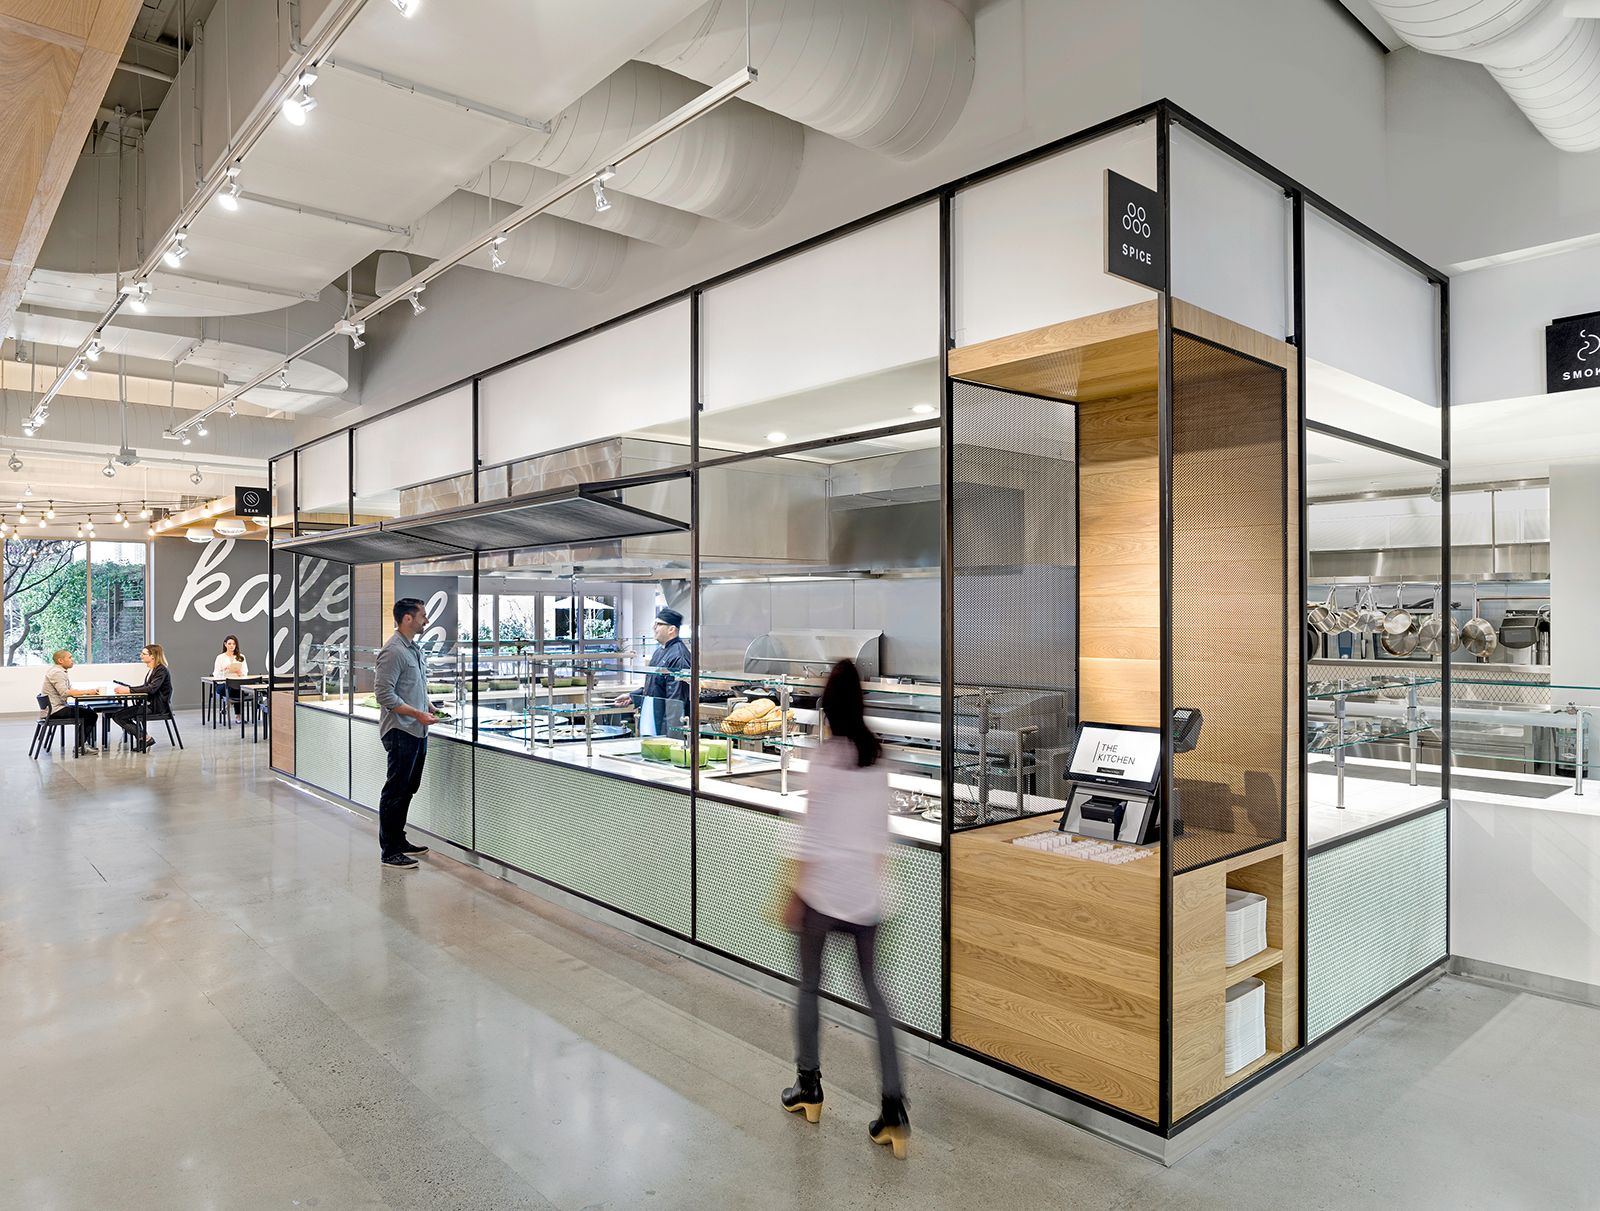 office cafeteria design interior ebay office cafeteria san jose snapshots ebay office food court design tour showroom pinterest